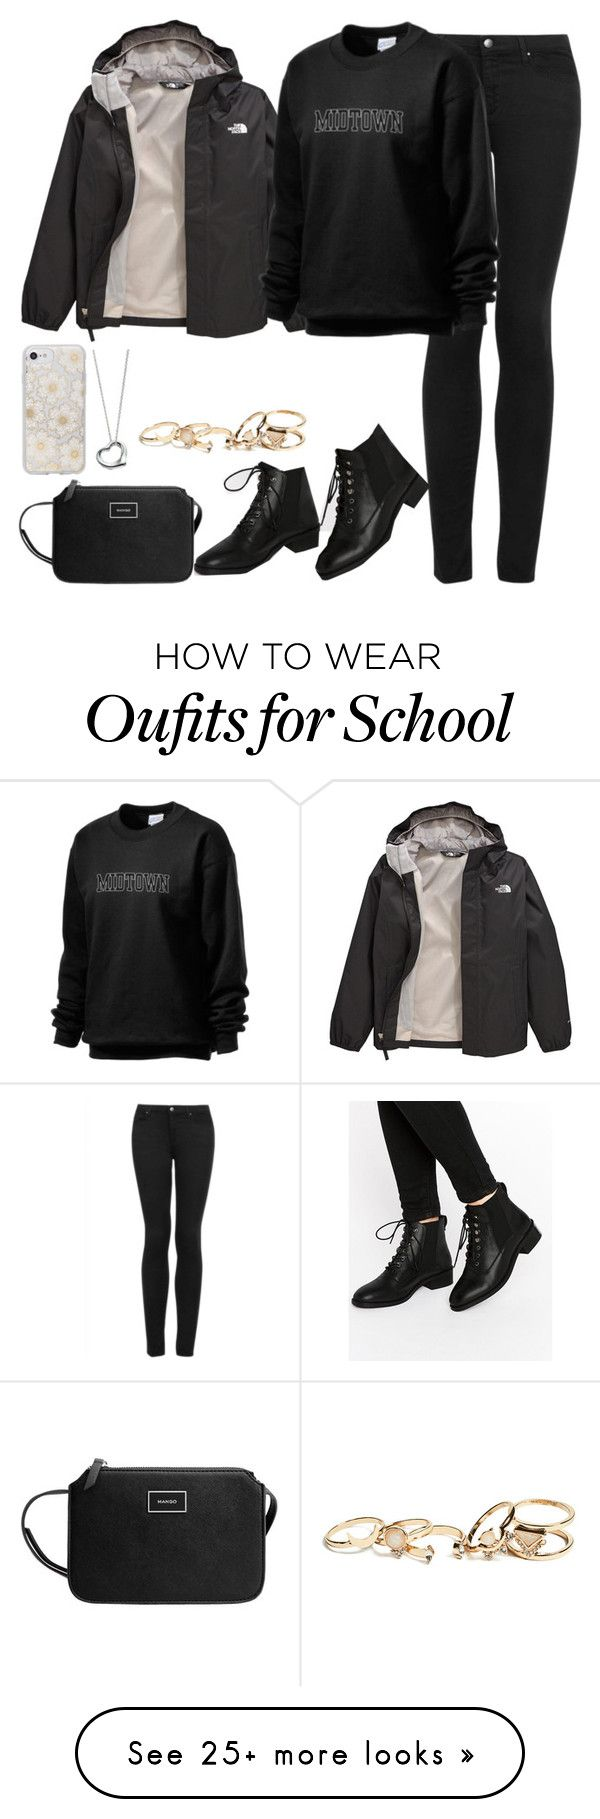 """Untitled #150"" by findthefinerthings on Polyvore featuring Topshop, ASOS, MANGO, Sonix, Elsa Peretti, The North Face and GUESS"